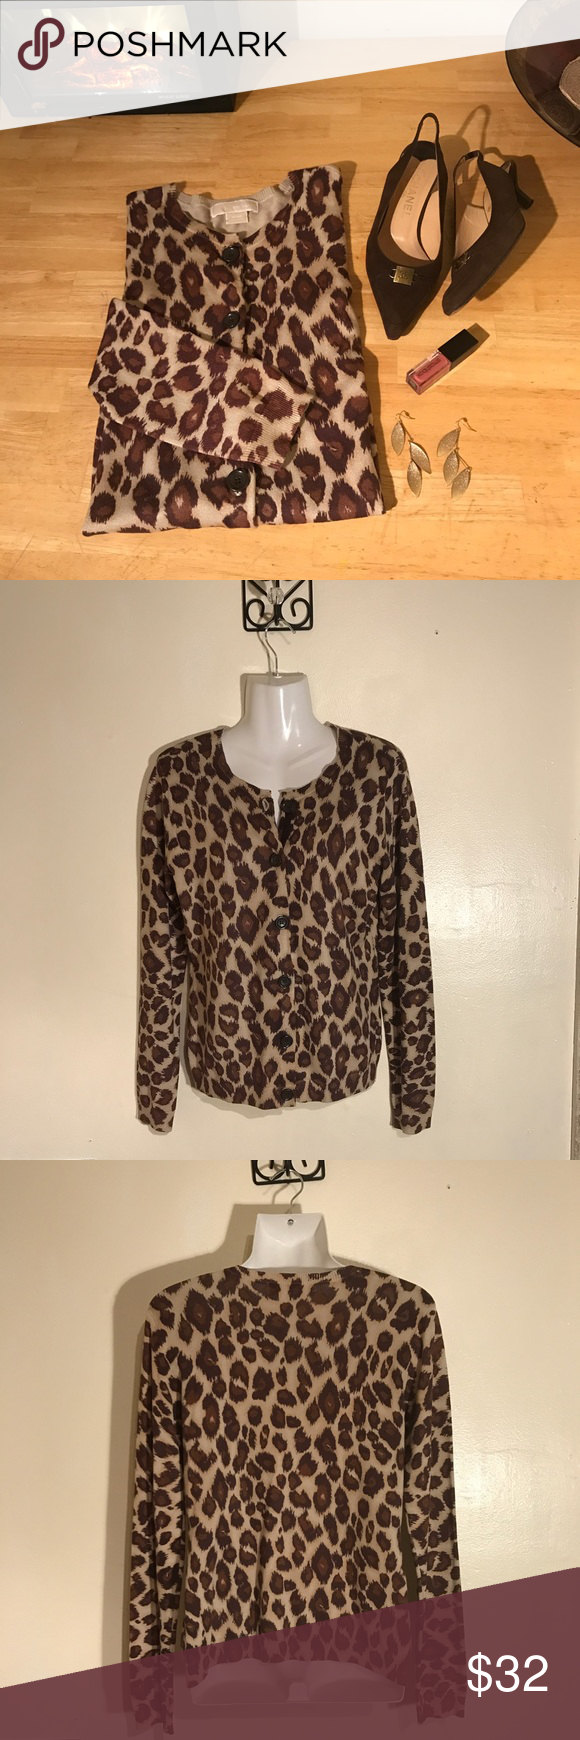 Leopard print MK cardigan Soft and sleek cardigan from 💥MICHAEL KORS💥.   Button down front and full sleeves. Medium size true to size. NEVER WORN. Excellent condition. Great look for the office ladies out there!! ☎️📠💻.   Reasonable offers considered. Michael Kors Sweaters Cardigans